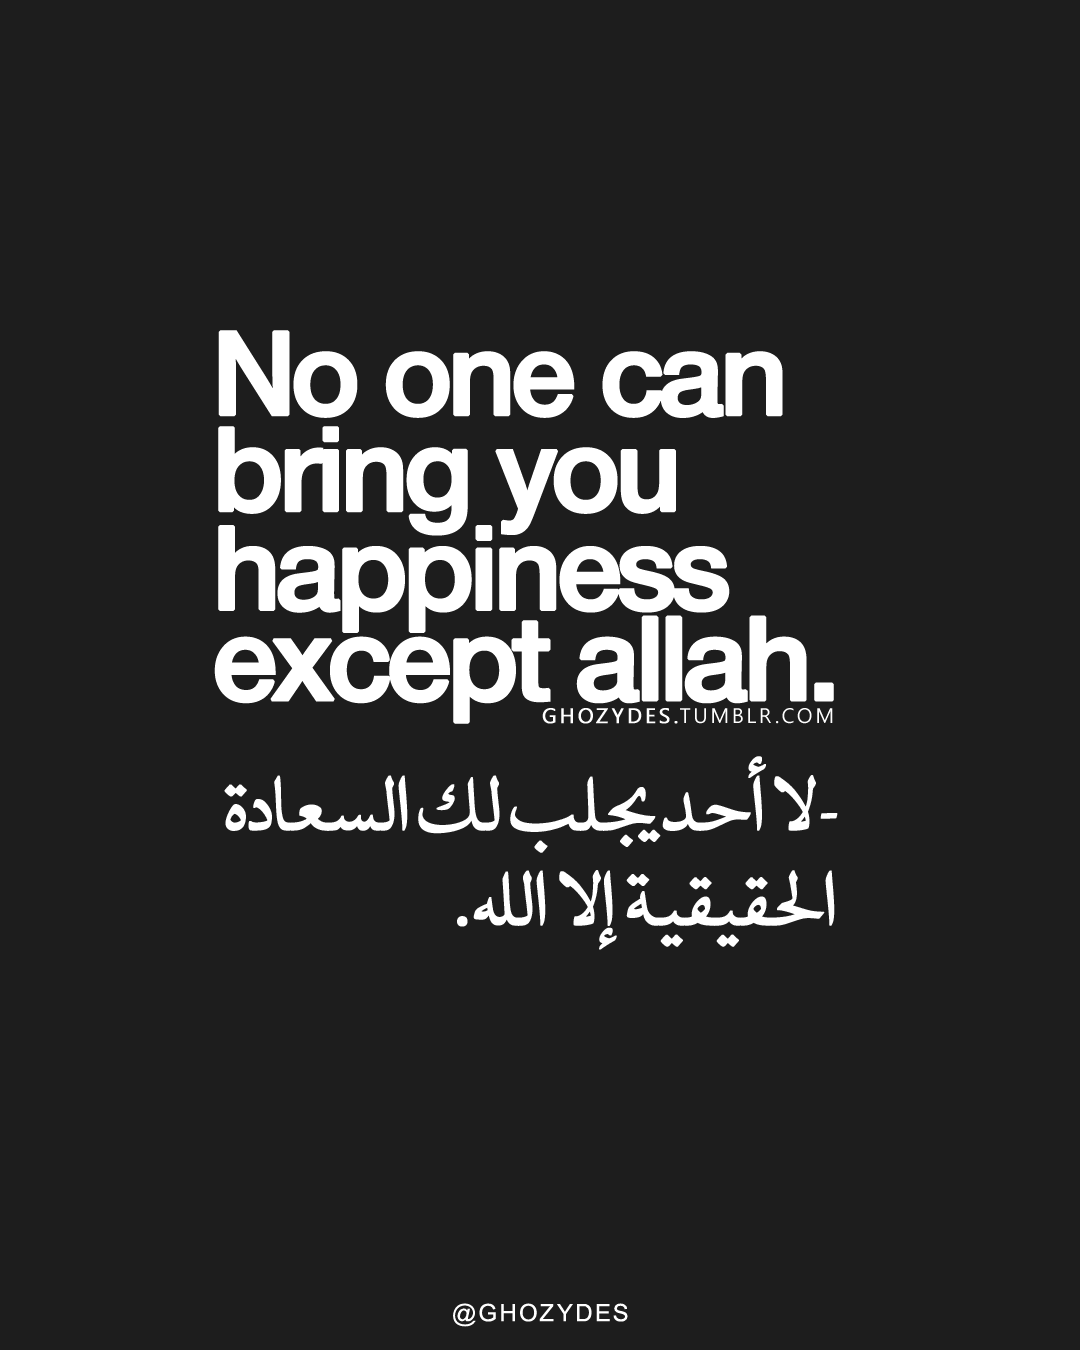 Pin By Siham On ج مله م في ده Arabic Quotes Quran Quotes Verses Islamic Quotes